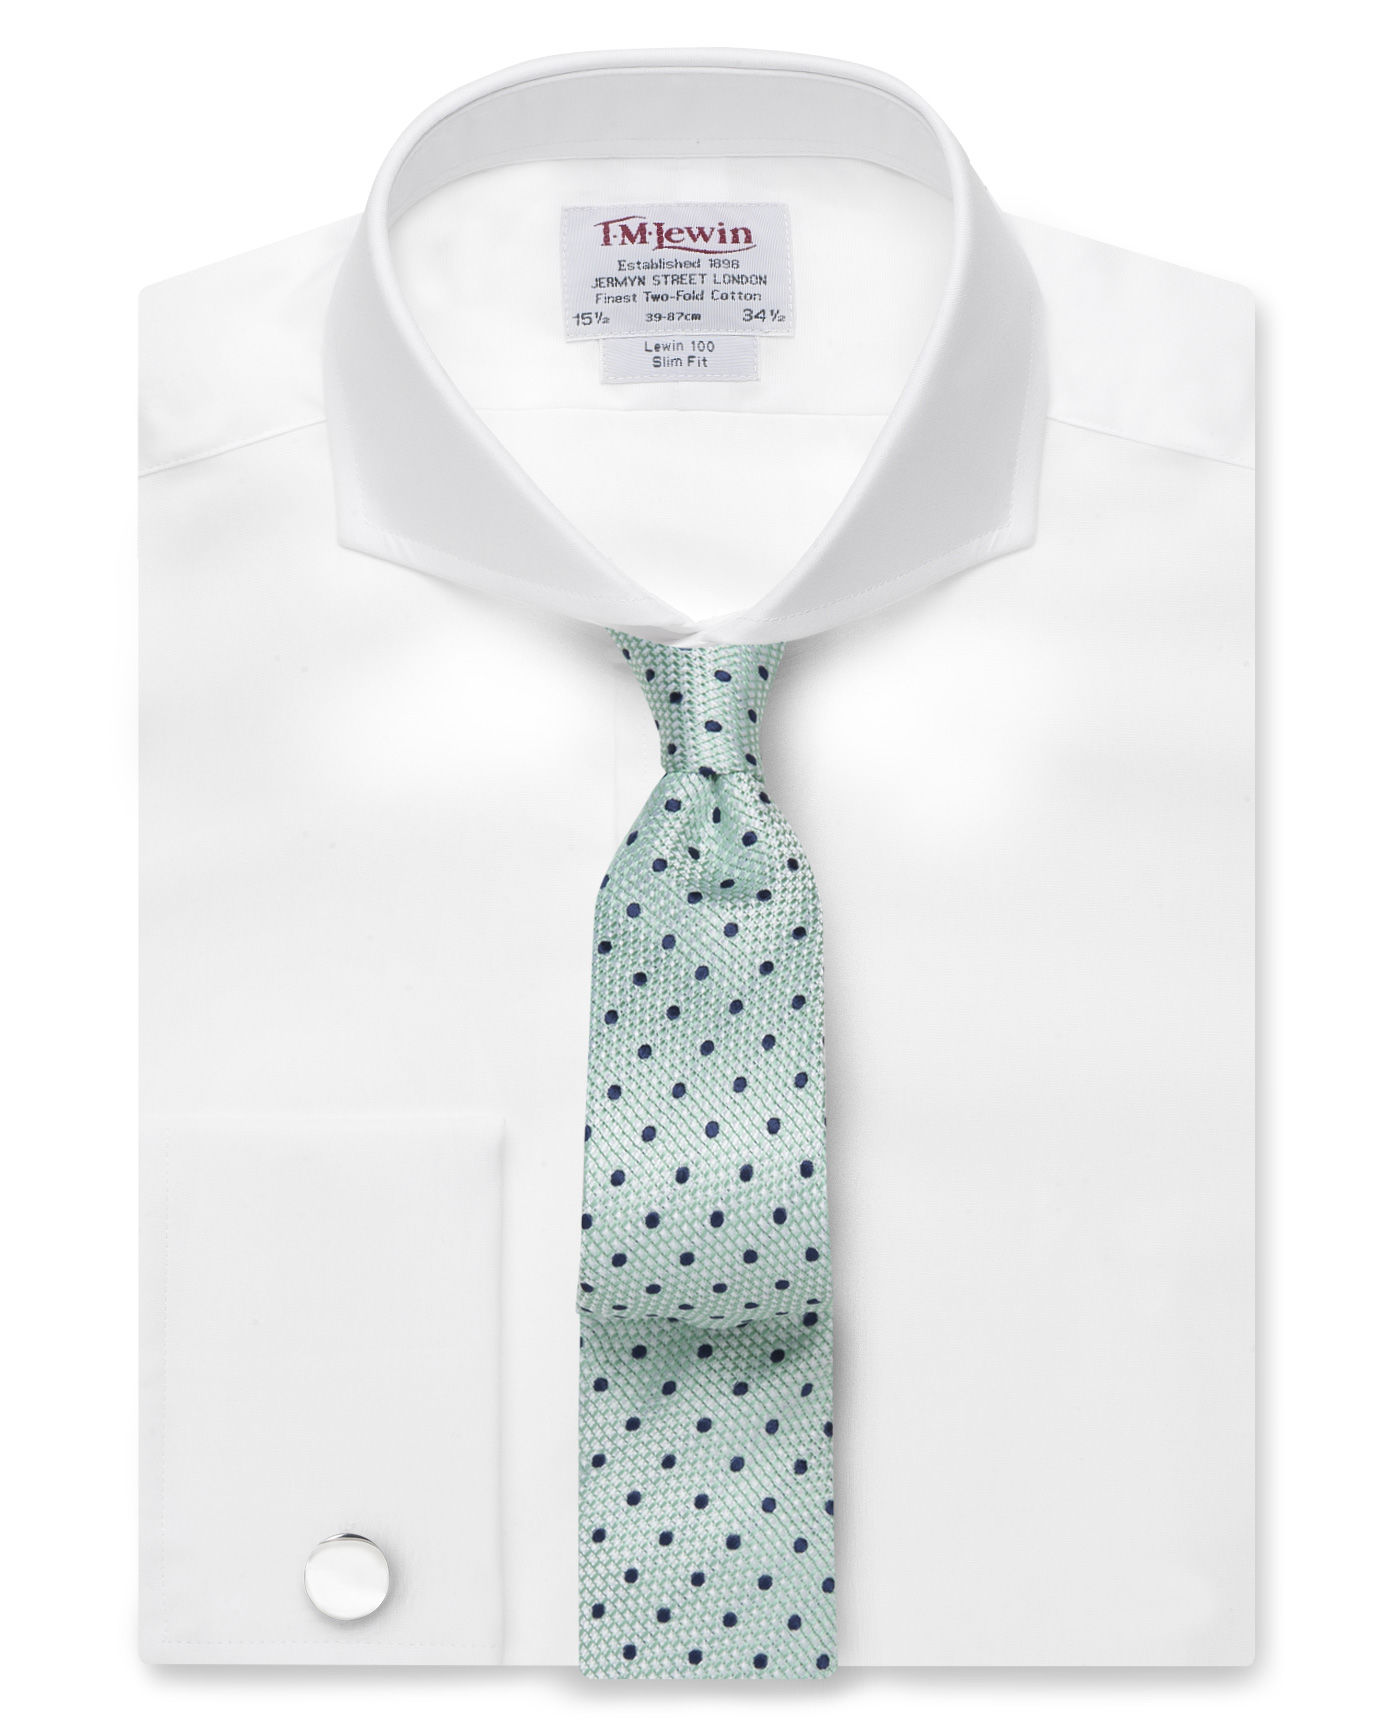 Extreme Cutaway Collar | Cutaway Collar | Straight Collar Dress Shirt